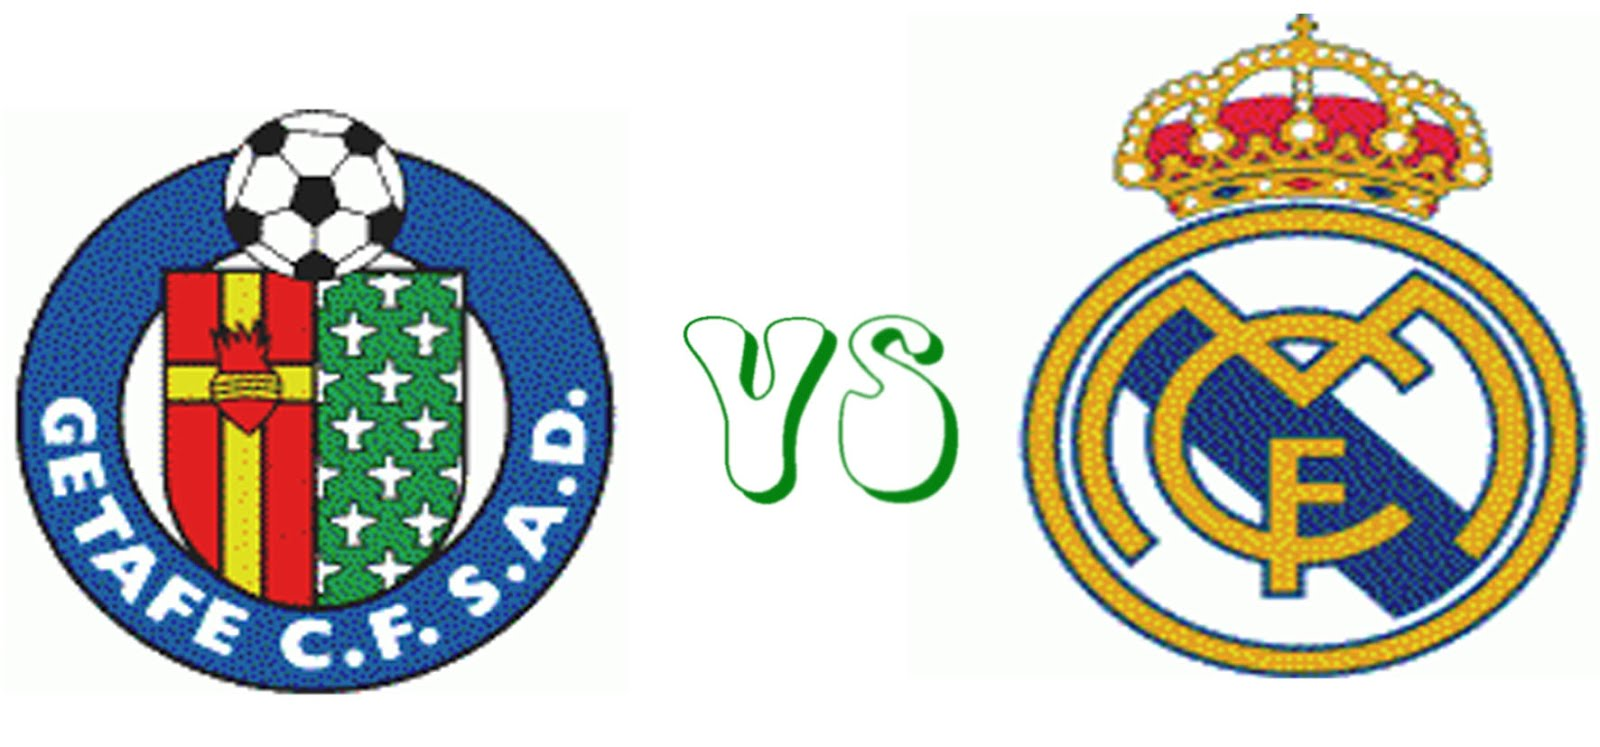 Ver Getafe Vs Real Madrid: Ver Getafe Vs Real Madrid En Vivo Y Gratis Por Internet 18